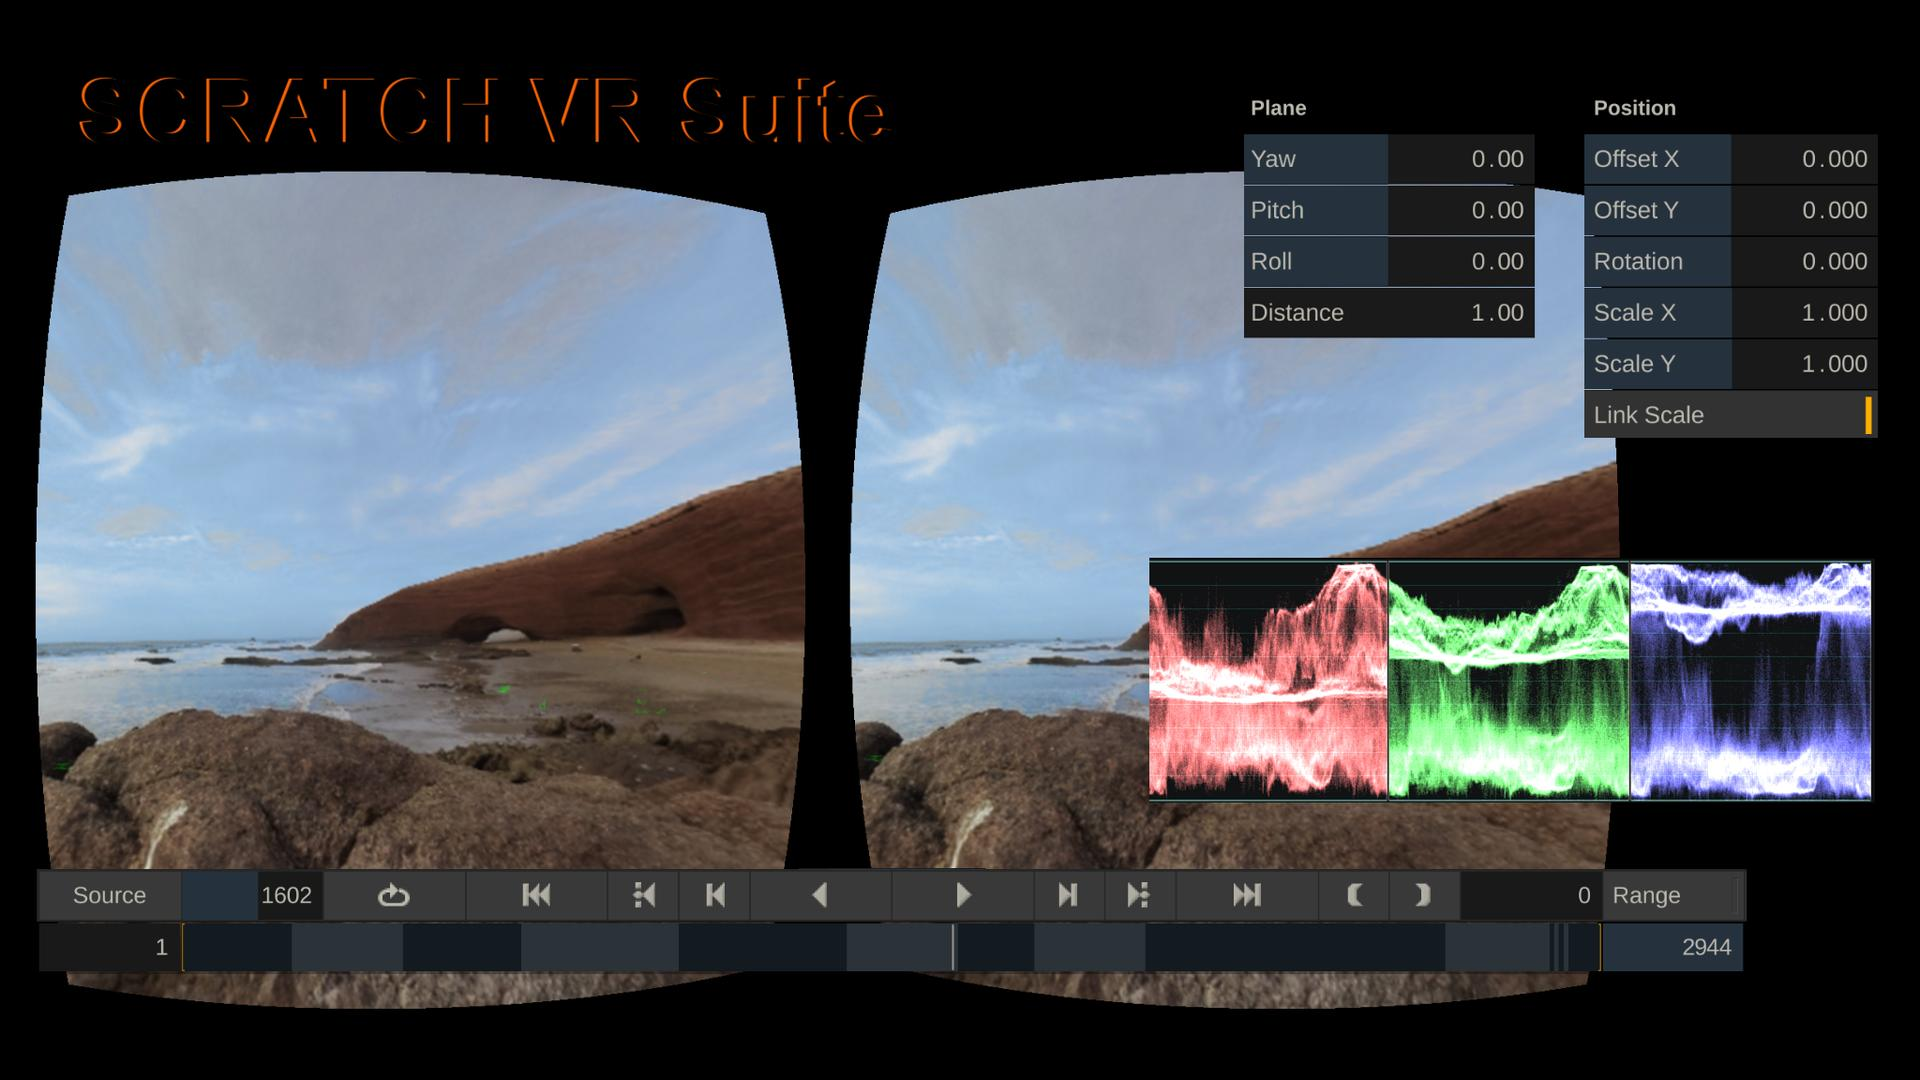 scratch-vr-suite-web-02.jpg